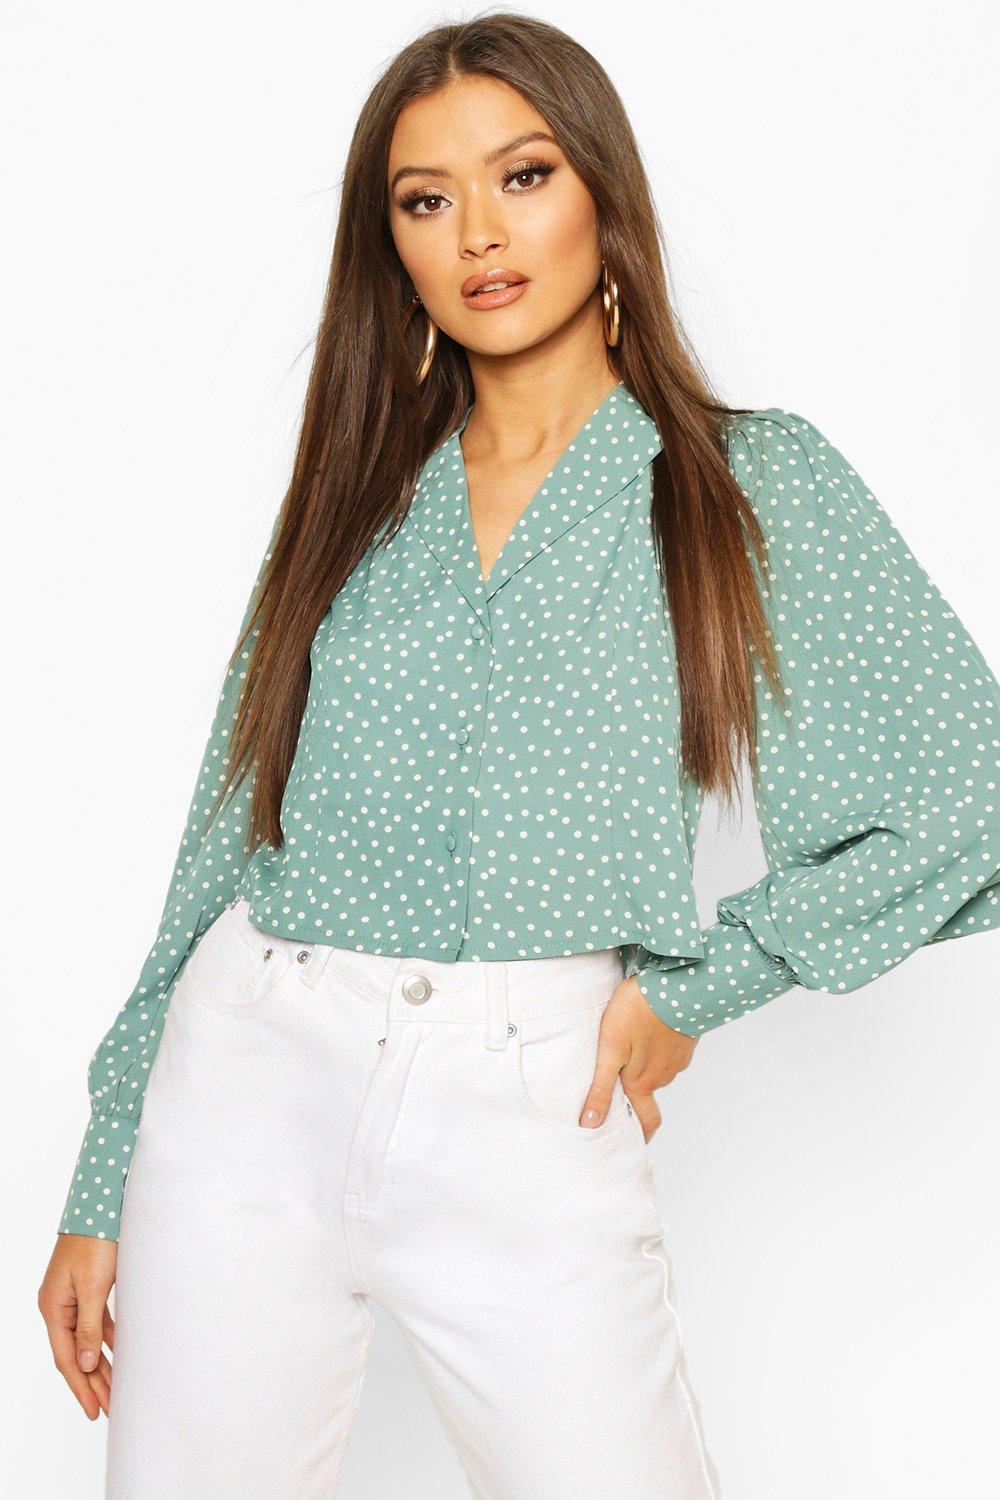 1930s Style Blouses, Shirts, Tops | Vintage Blouses Womens Woven Polka Dot Sleeve Blouse - green - 12 $37.00 AT vintagedancer.com